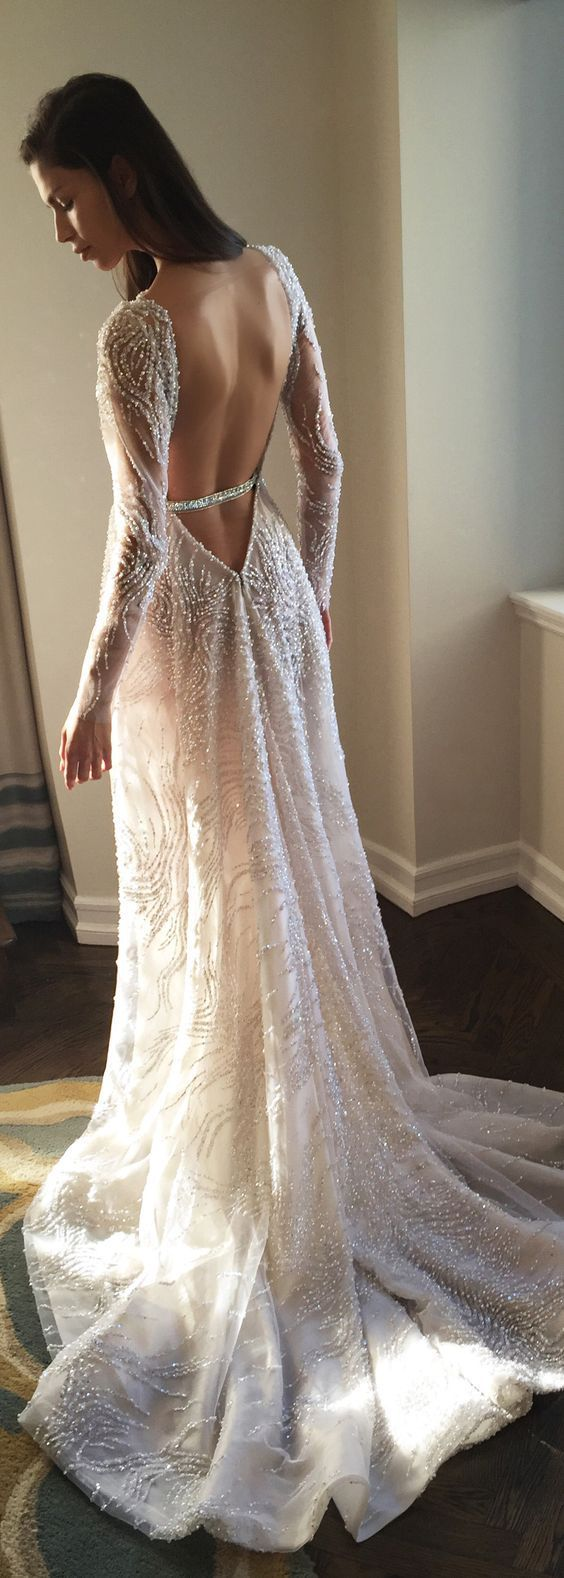 Unique Long-Sleeve Bare Back Wedding Dress